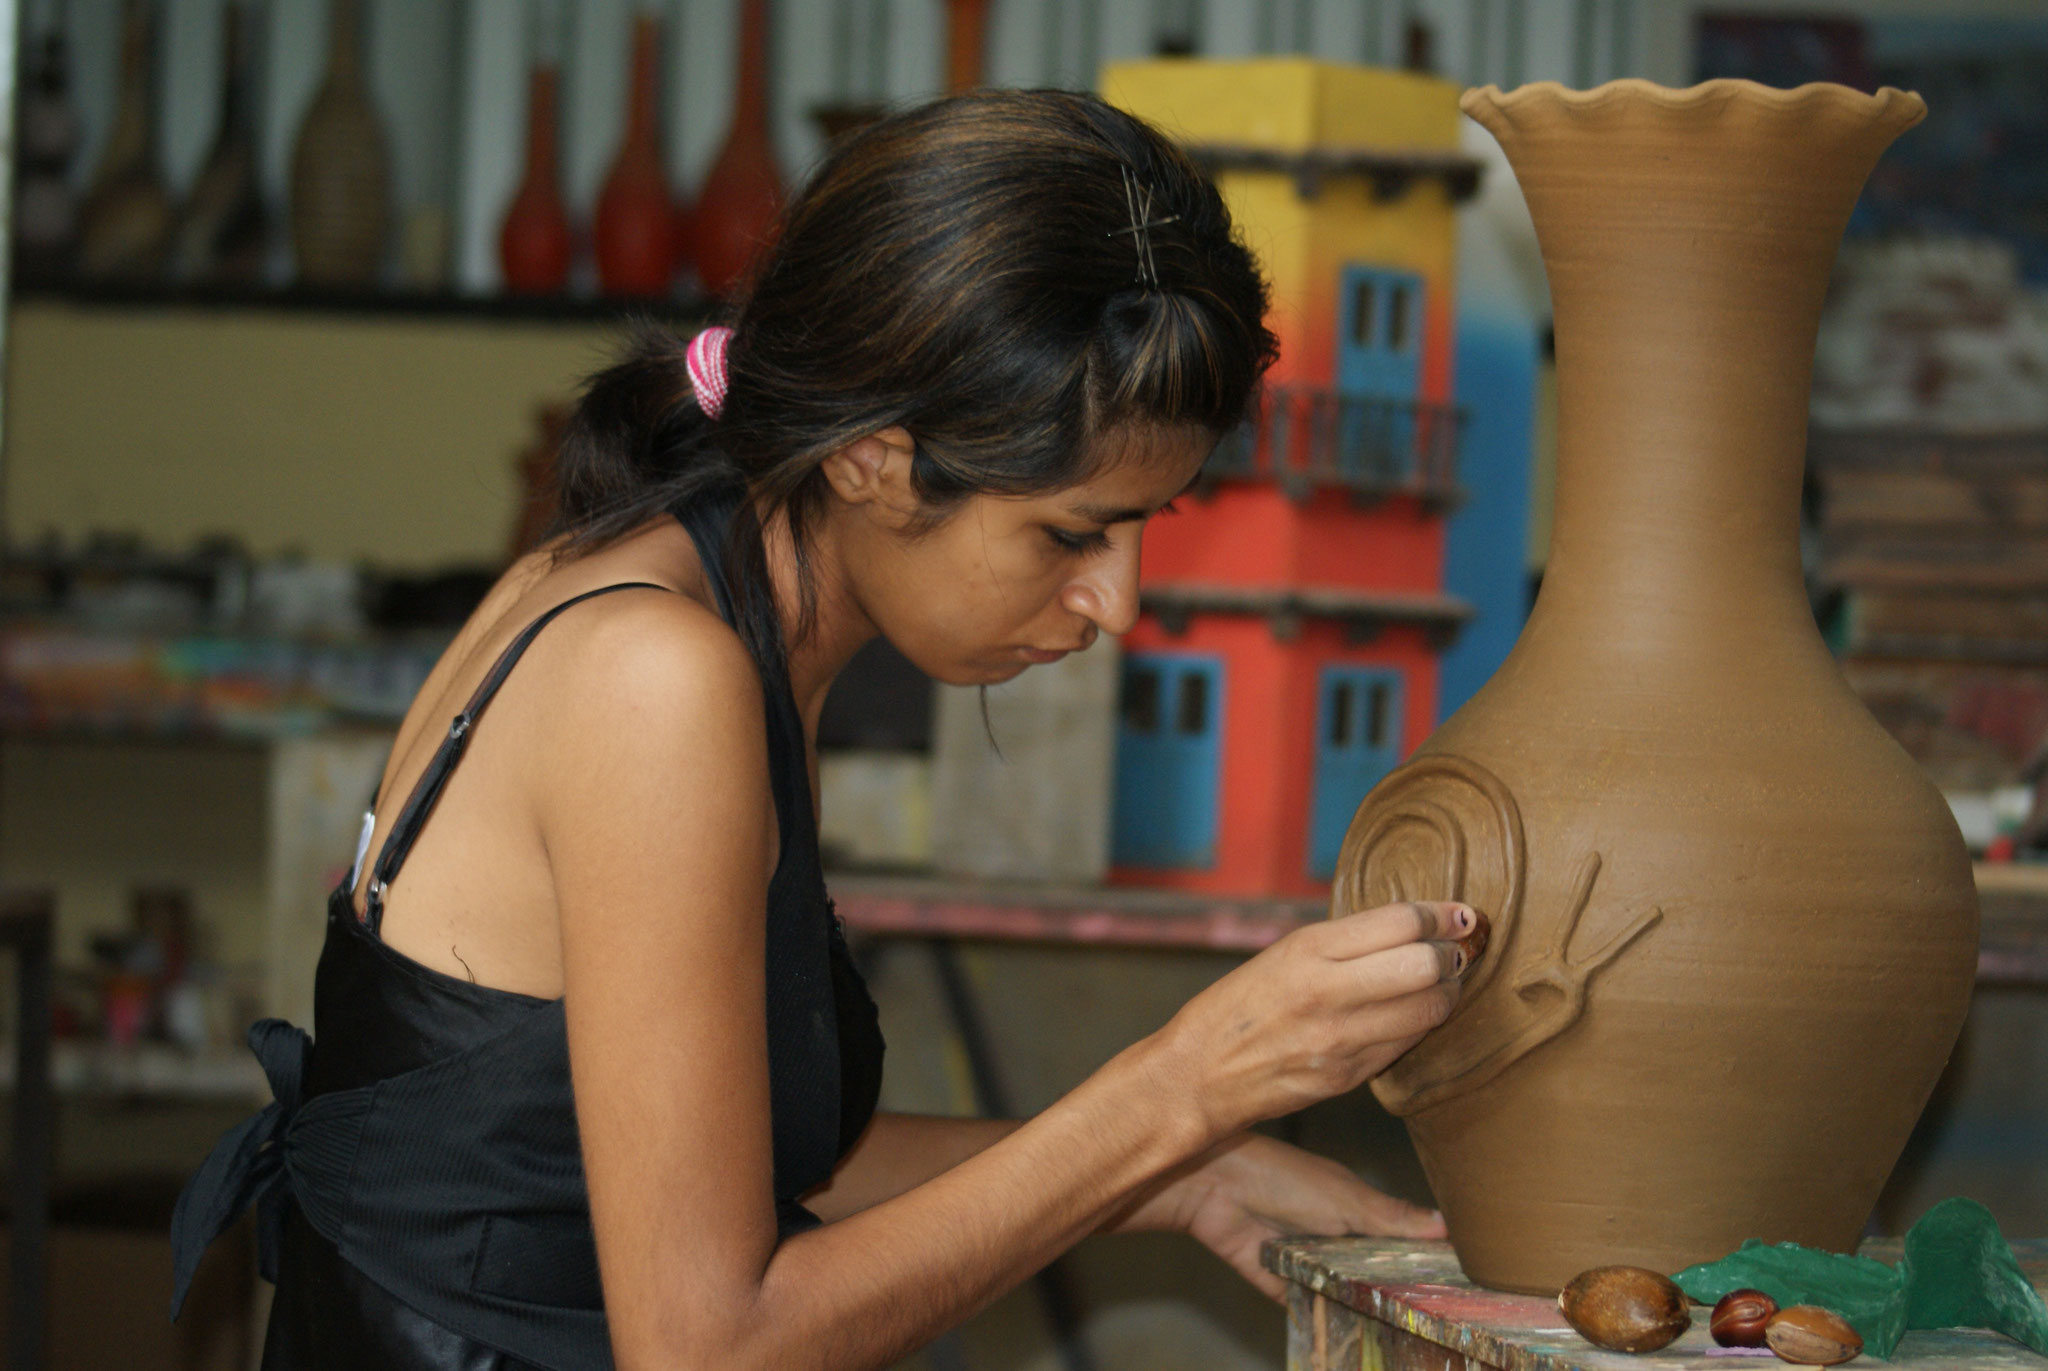 A young woman creates ceramics for her new business